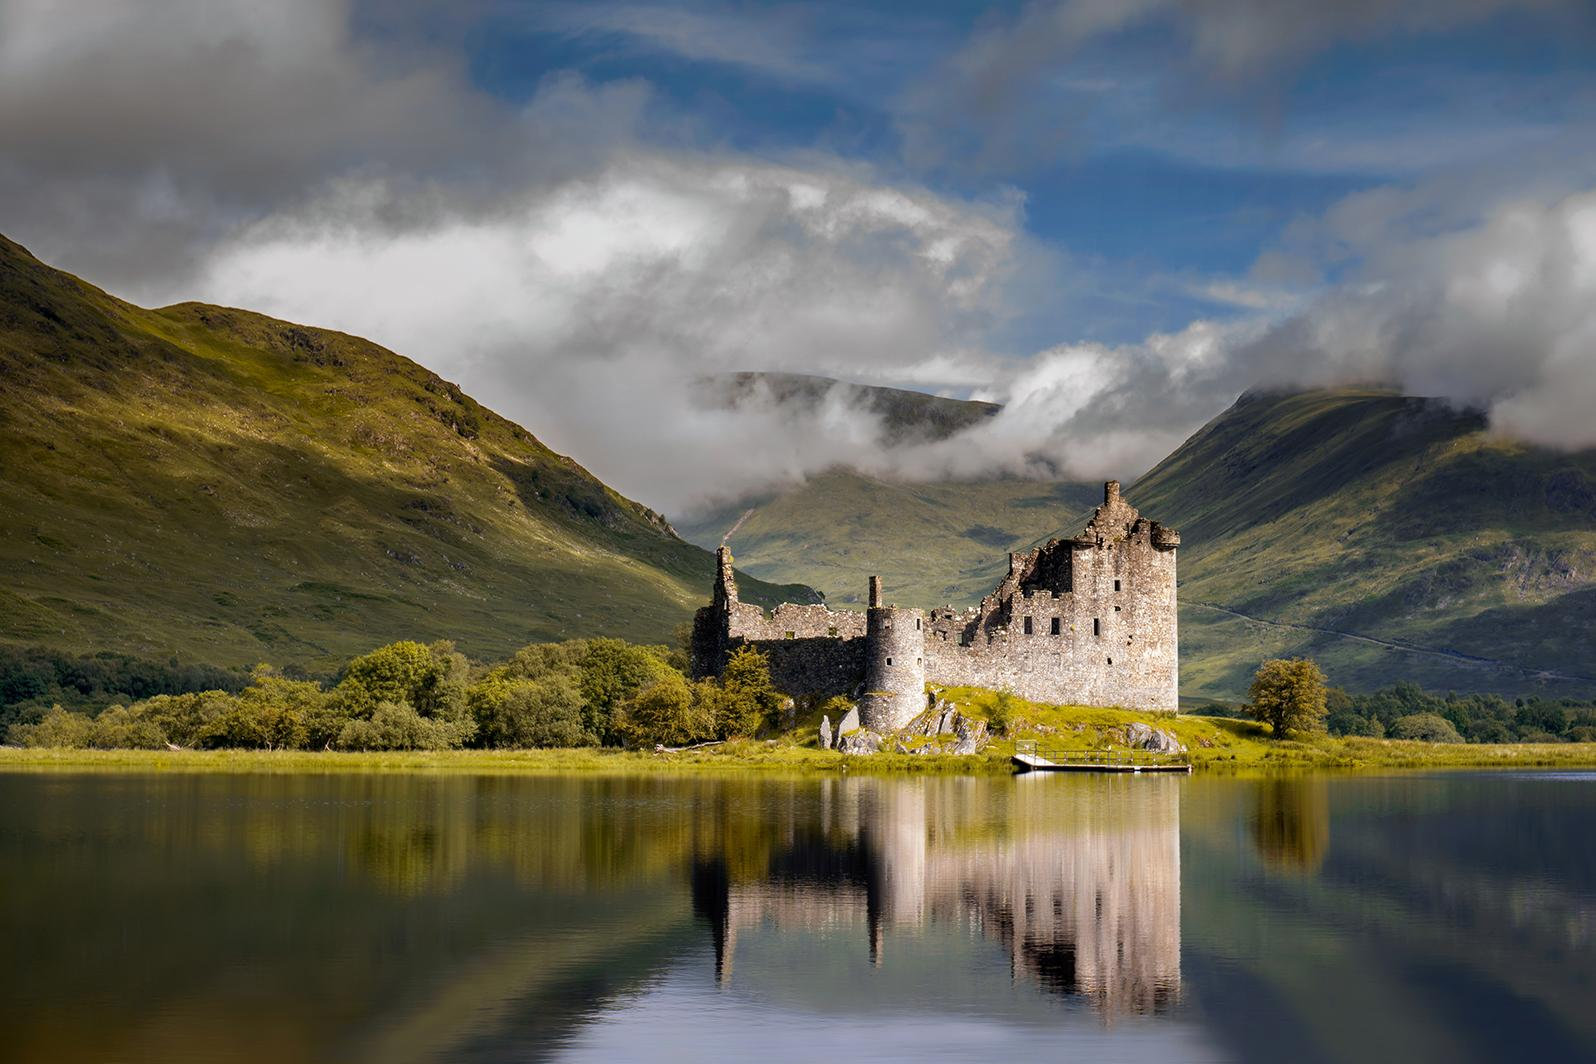 Scottish castle view with Scotland vacation packages